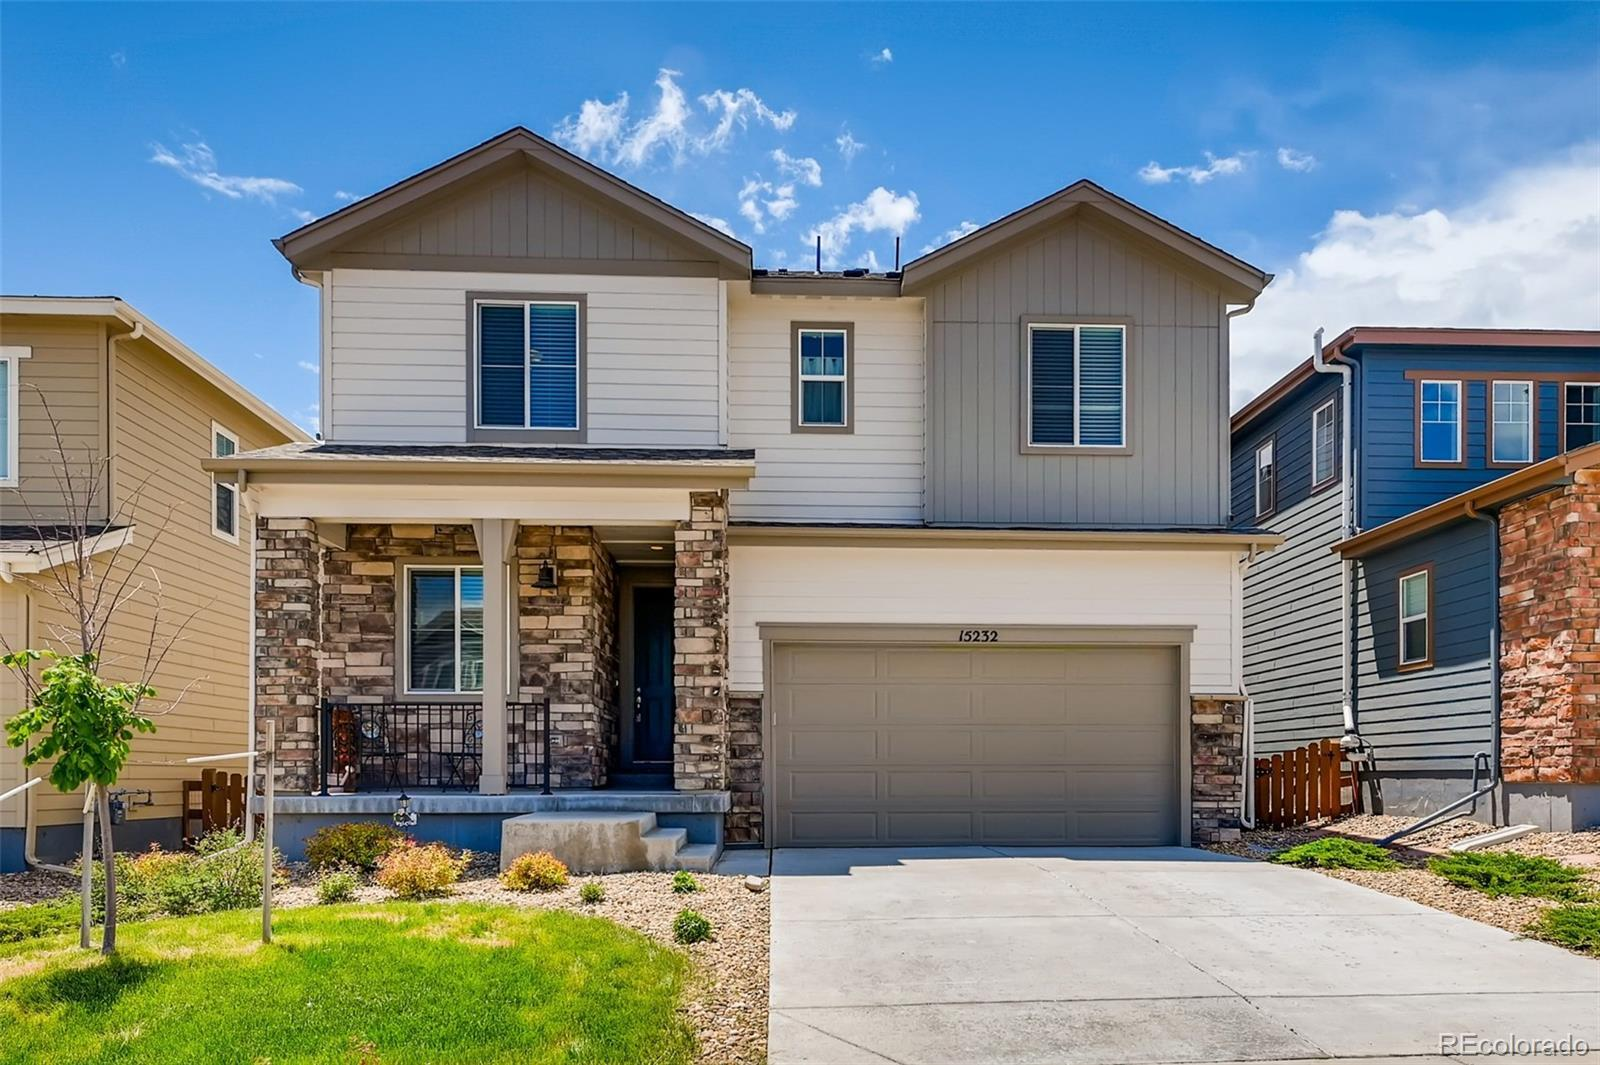 15232 W 93rd Place, Arvada, CO 80007 - #: 5433443